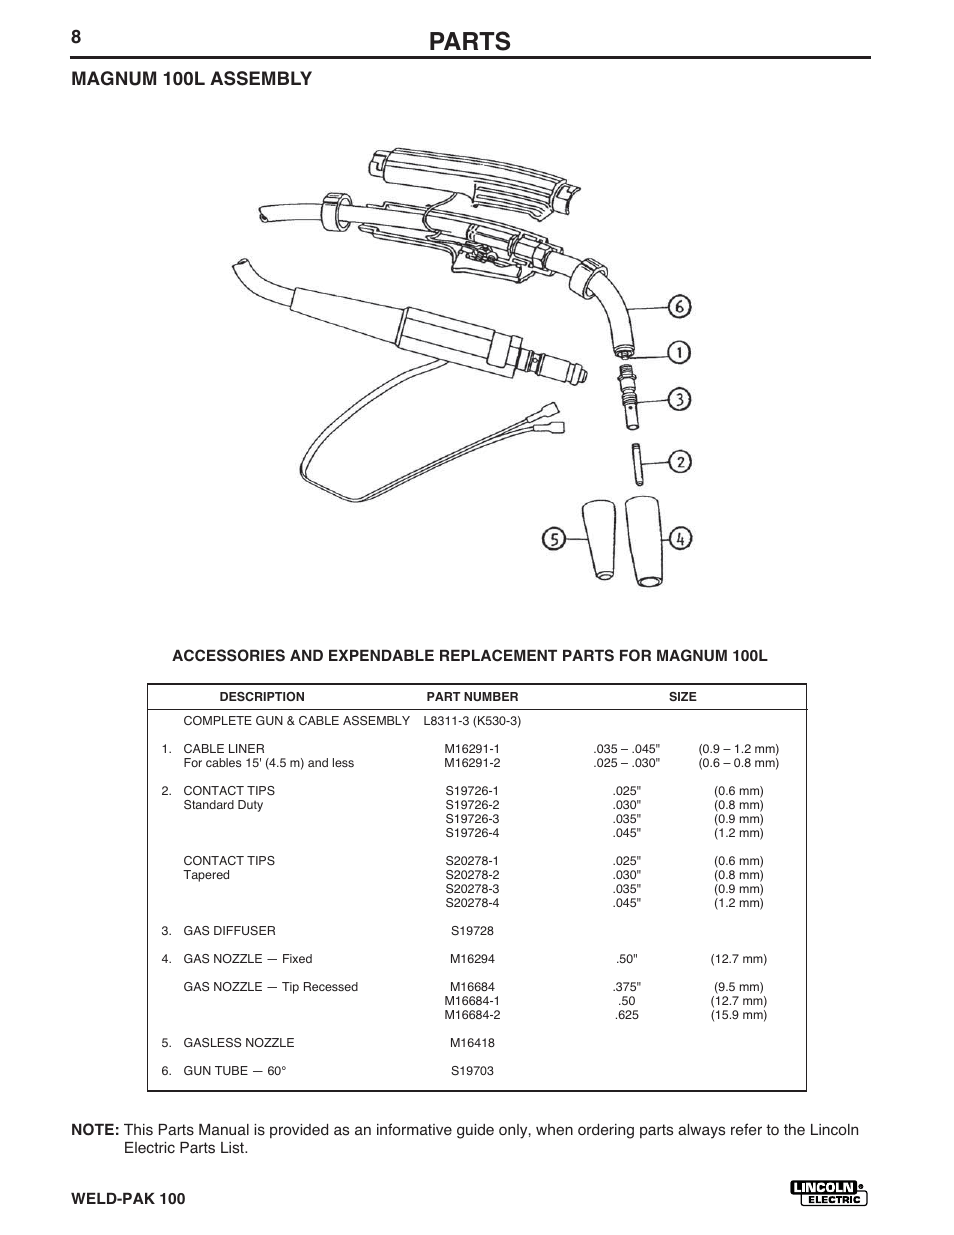 lincoln electric welder parts diagram er for library management system project magnum 100l assembly weld pack 100 plus im546 user manual page 54 60